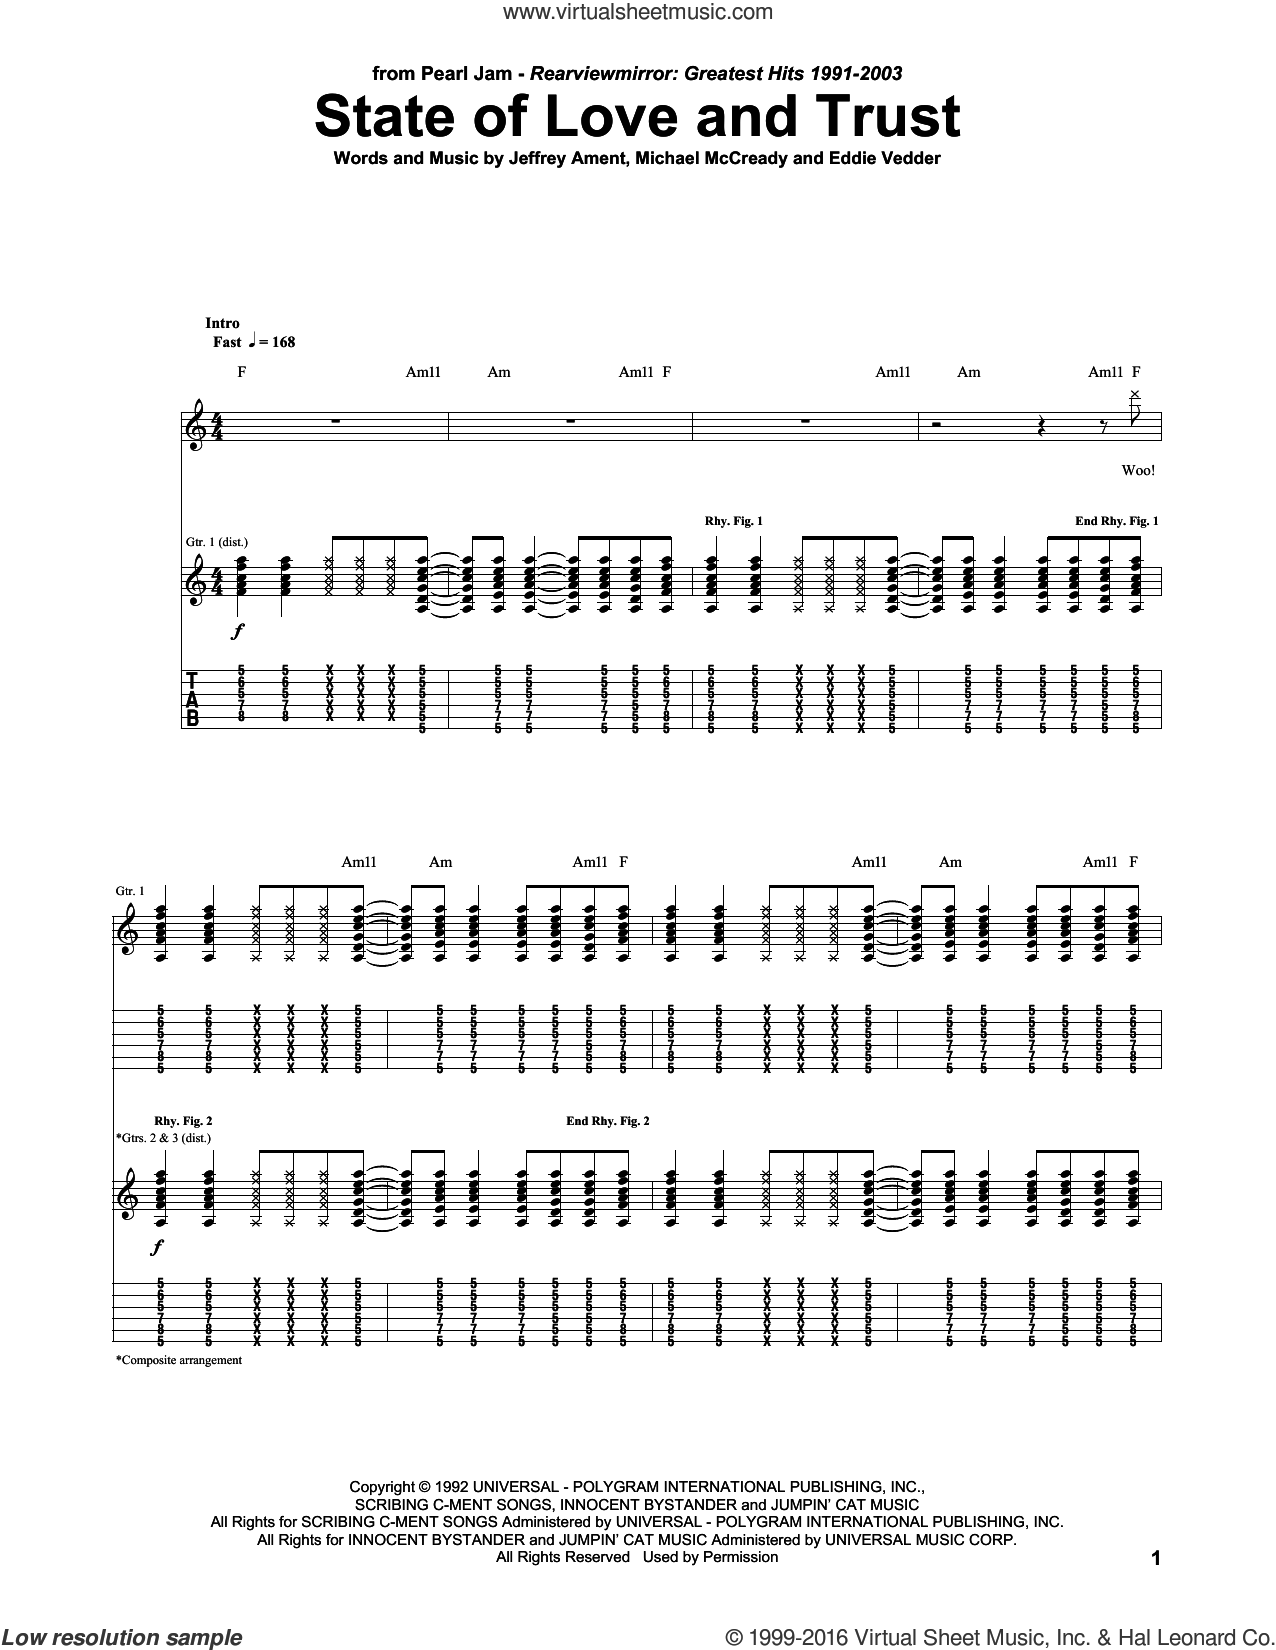 State Of Love And Trust sheet music for guitar (tablature) by Pearl Jam, Eddie Vedder, Jeffrey Ament and Michael McCready, intermediate skill level